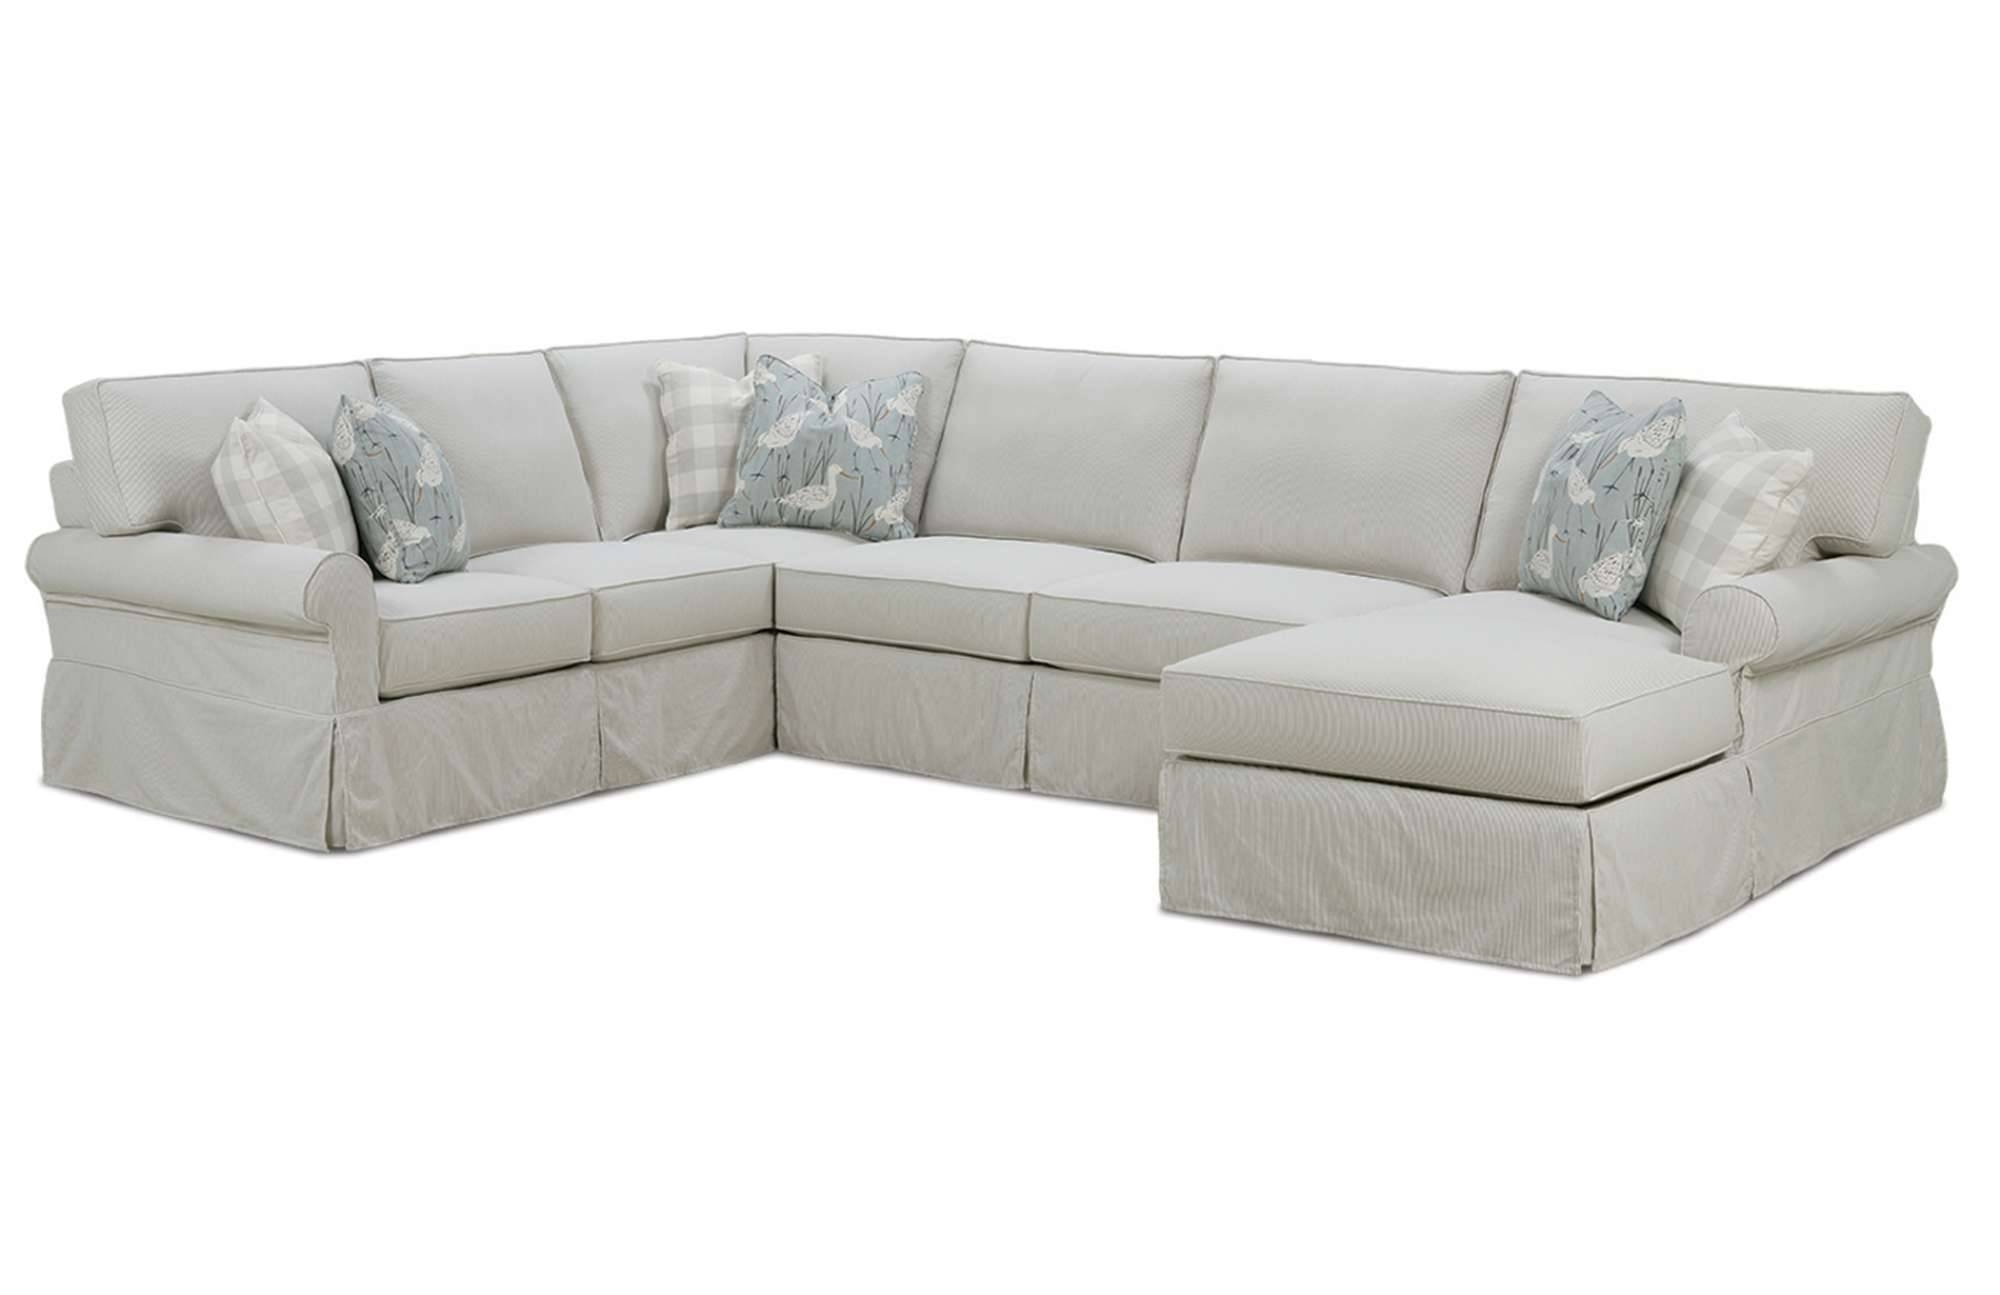 Easton Slipcover Sectionalrowe Furniture intended for Rowe Sectional Sofas (Image 3 of 15)